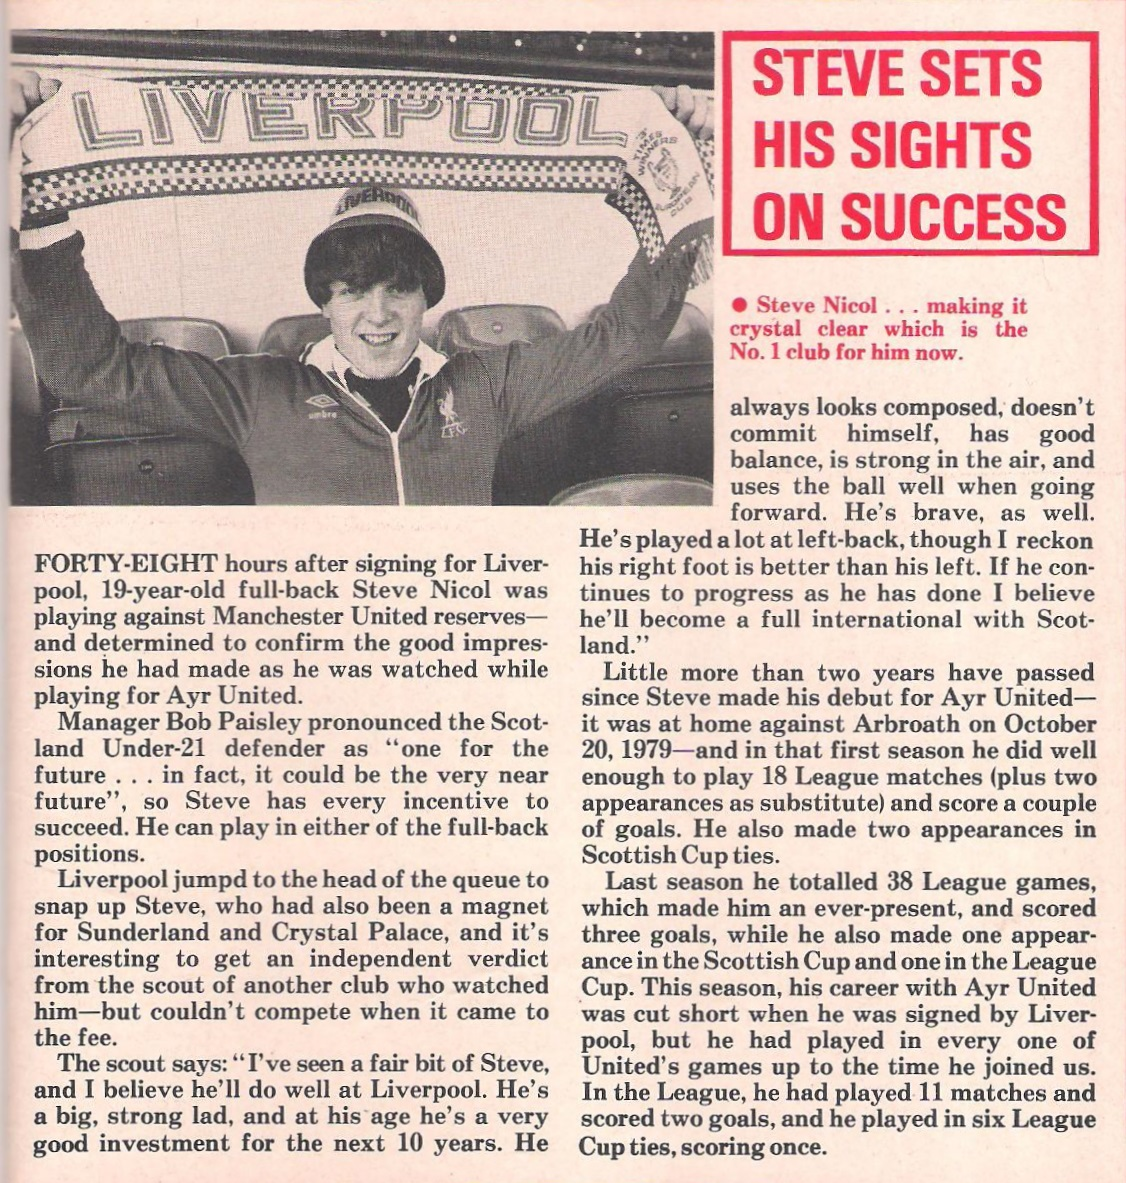 Steve sets sights on success - 1981